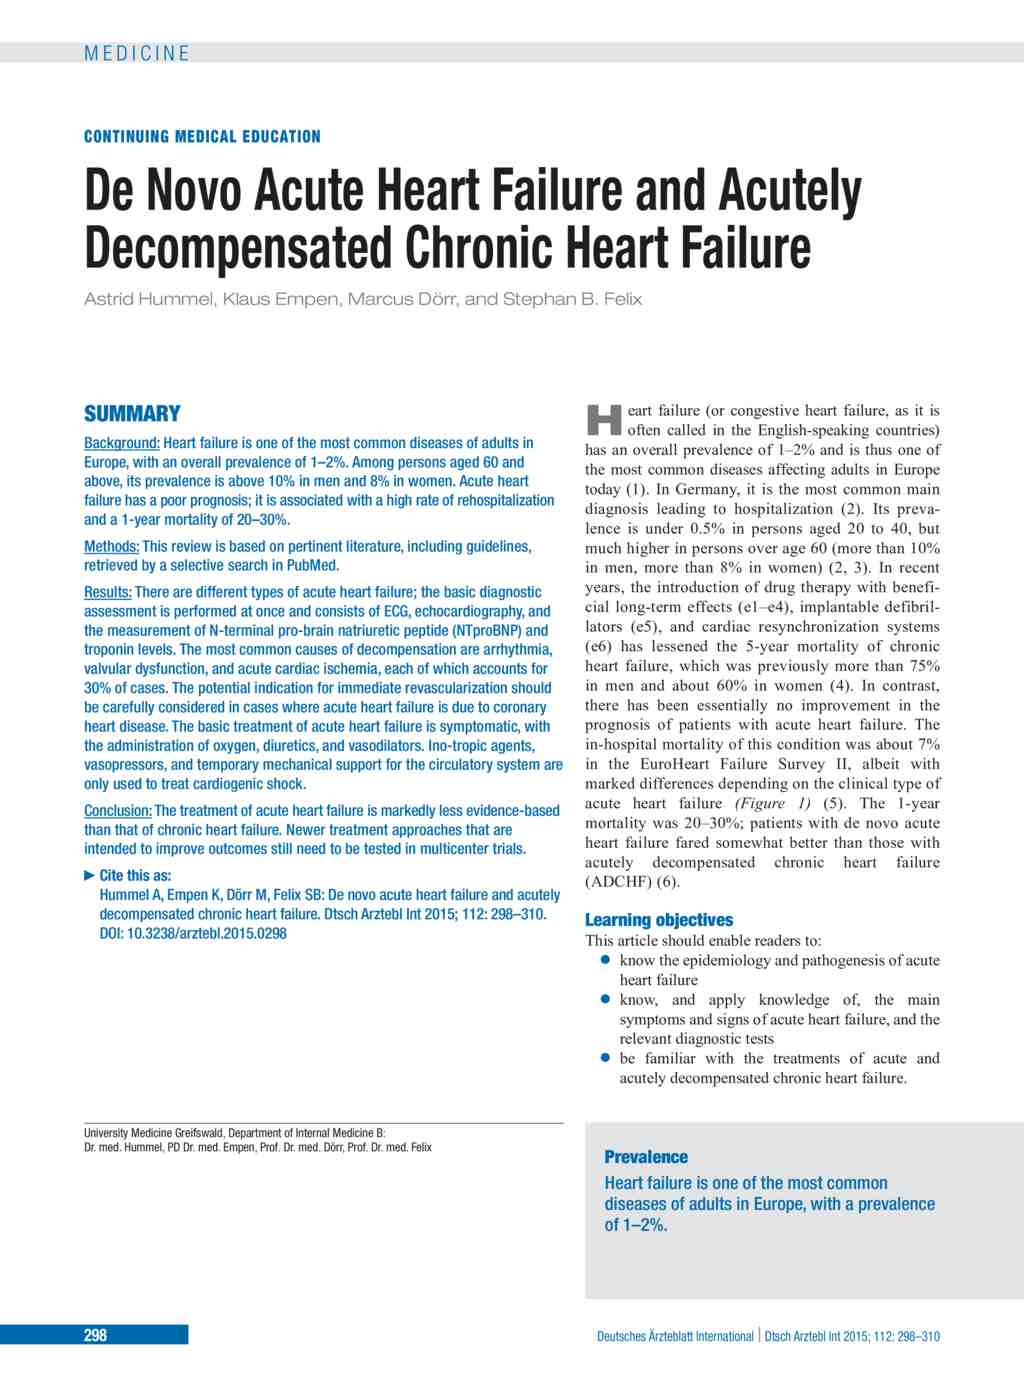 pathogenesis of fluid volume excess in an acute exacerbation chronic heart failure patient essay